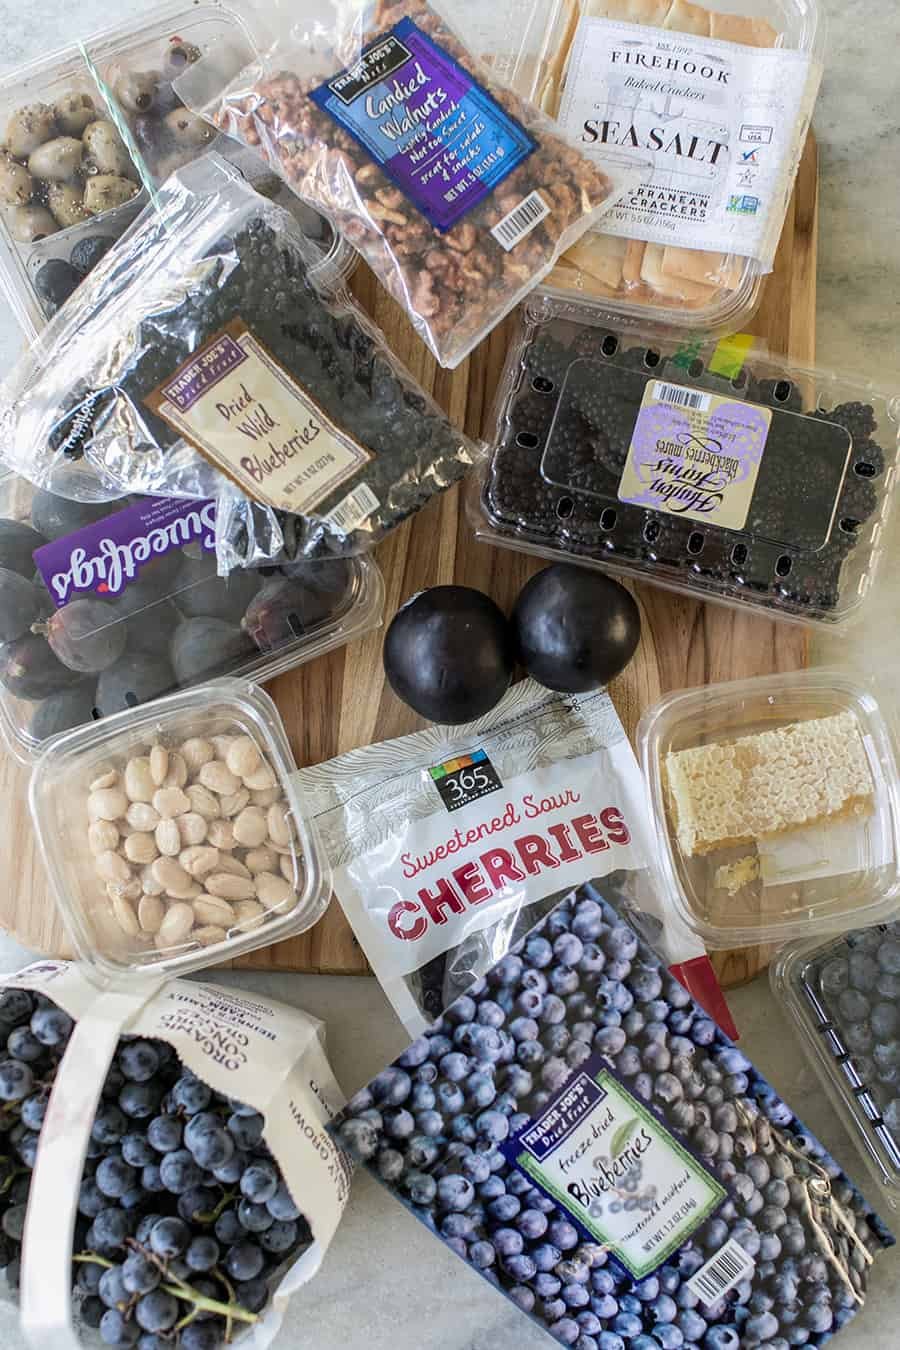 Berries, nuts, honey and grapes for a meat and cheese board.